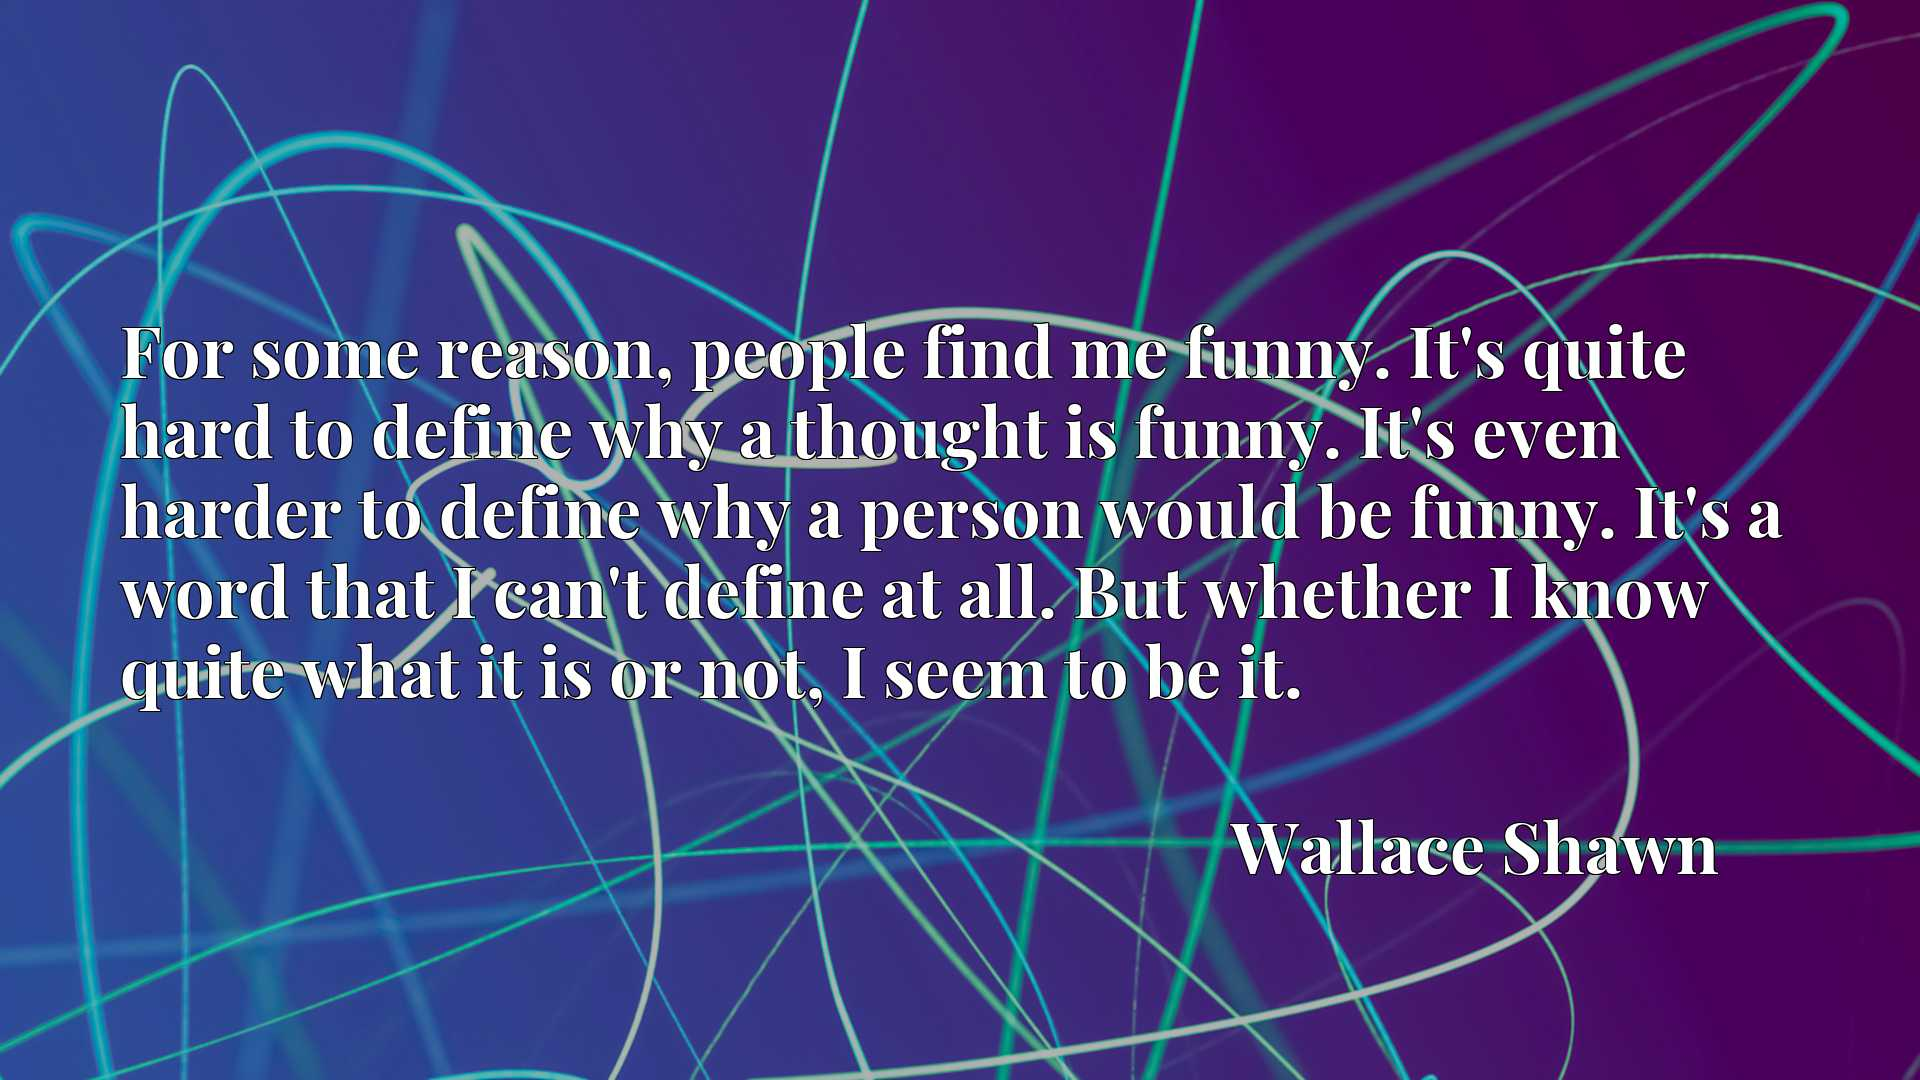 For some reason, people find me funny. It's quite hard to define why a thought is funny. It's even harder to define why a person would be funny. It's a word that I can't define at all. But whether I know quite what it is or not, I seem to be it.